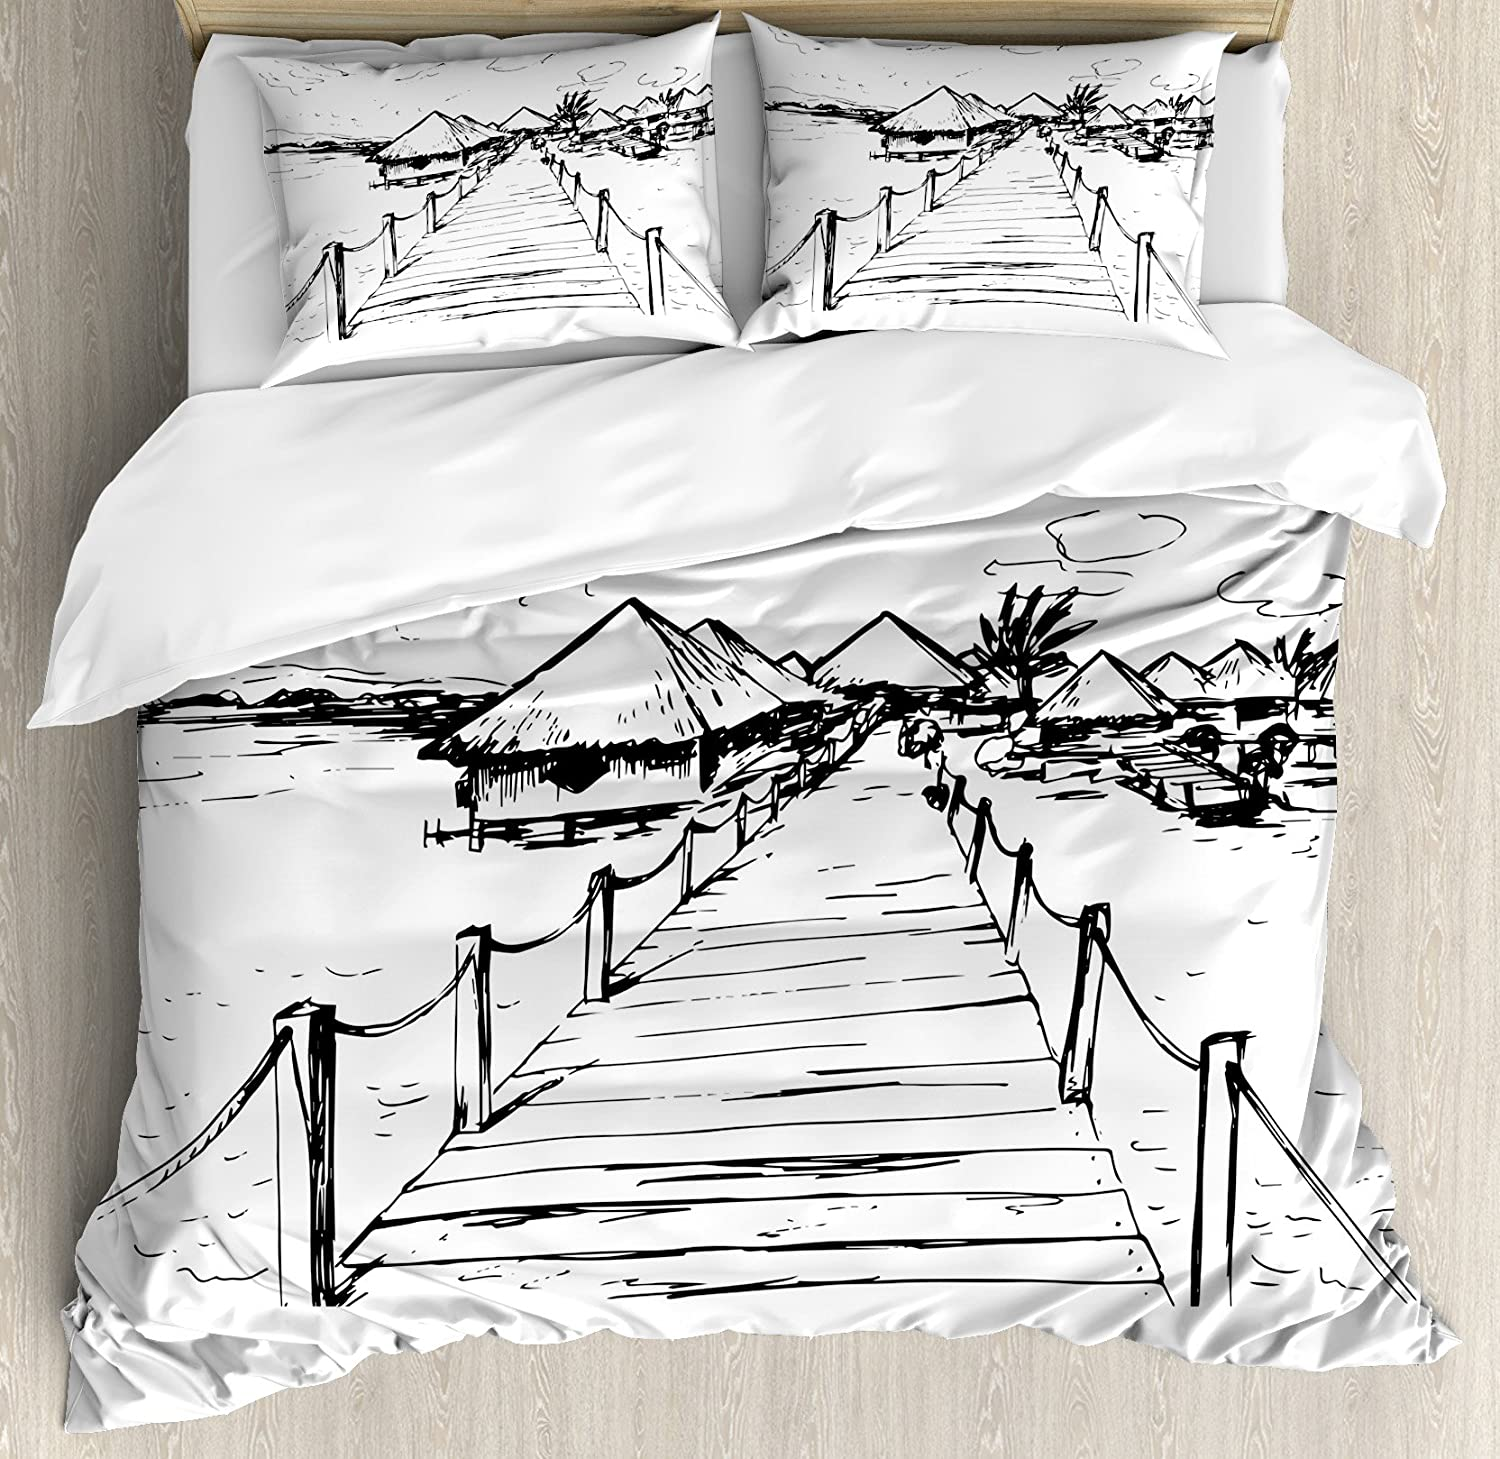 Ambesonne Hawaiian Duvet Cover Set King Size, Sketch Style Hawaii Dock Tiki Huts Bungalows Tropical Trees Beachy Boho Design, Decorative 3 Piece Bedding Set with 2 Pillow Shams, Black White